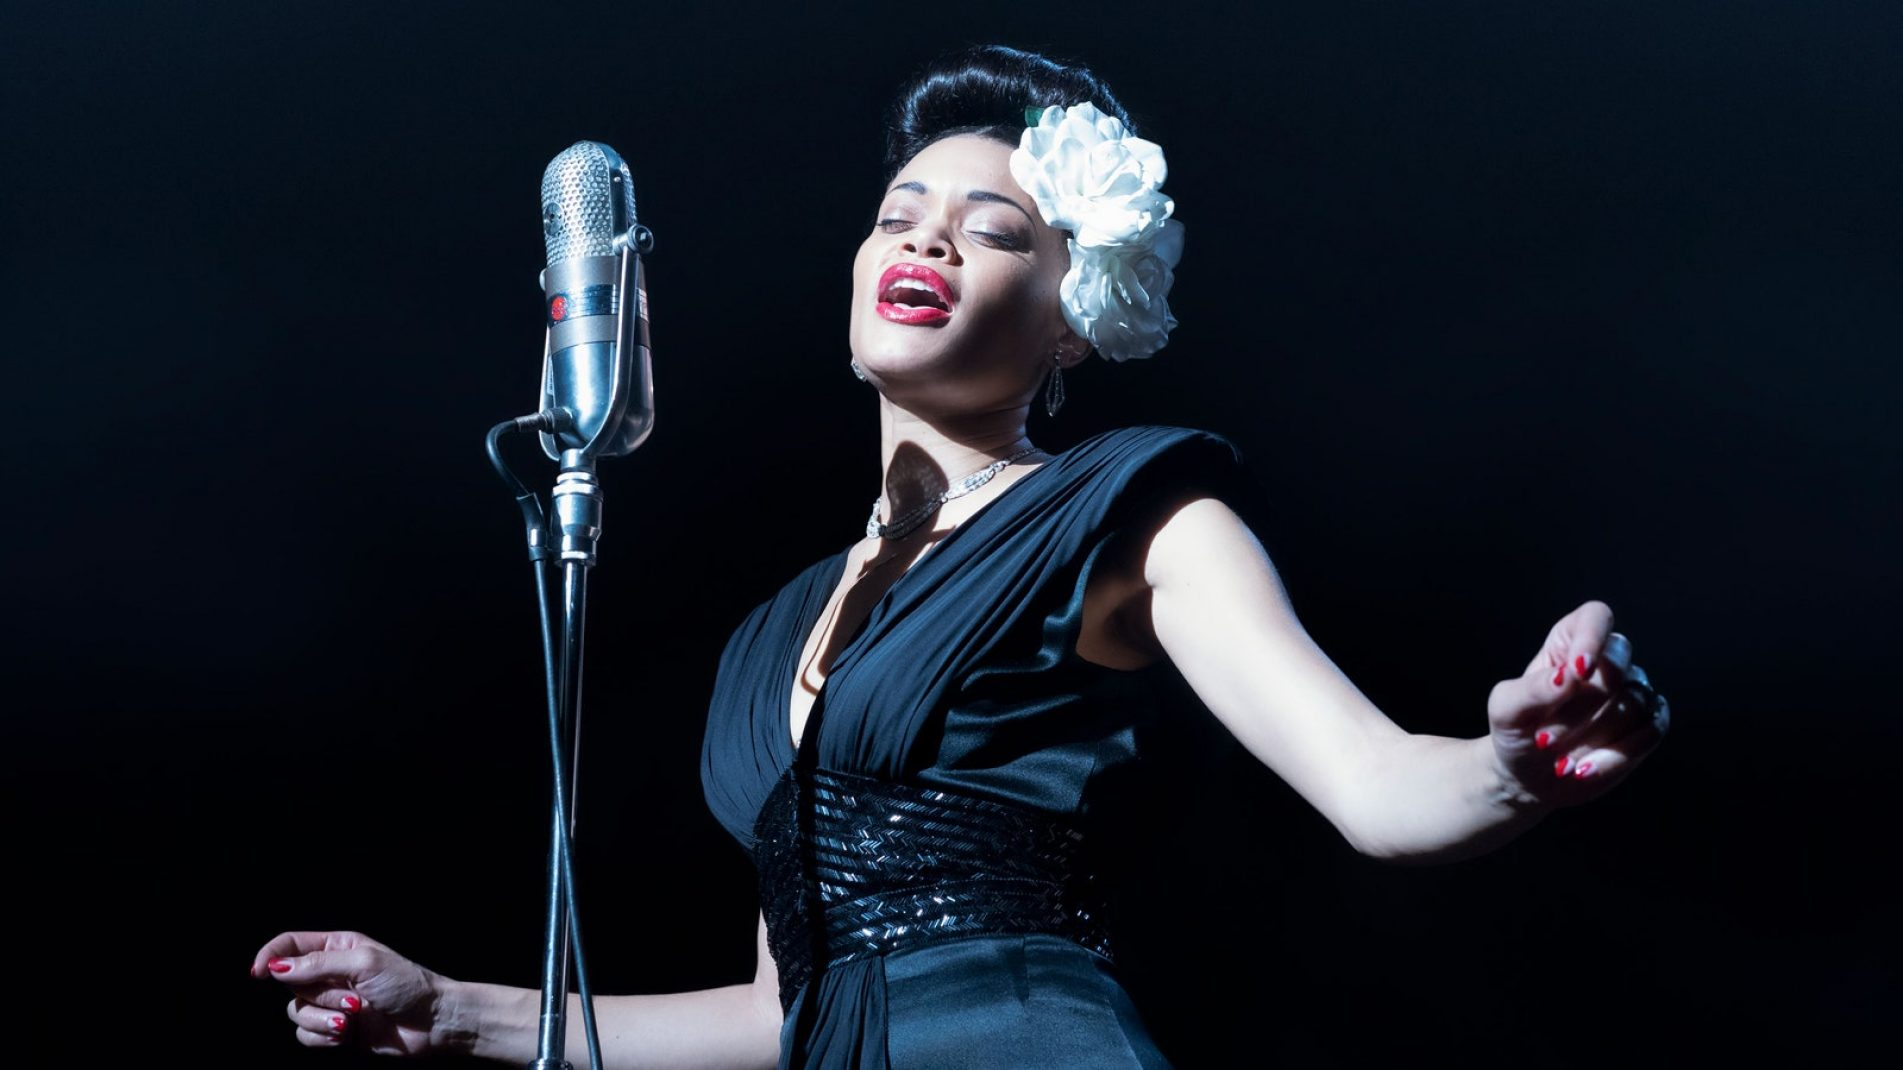 Andra Day as Billie Holiday in The United States vs. Billie Holiday | Photo: Courtesy of Hulu